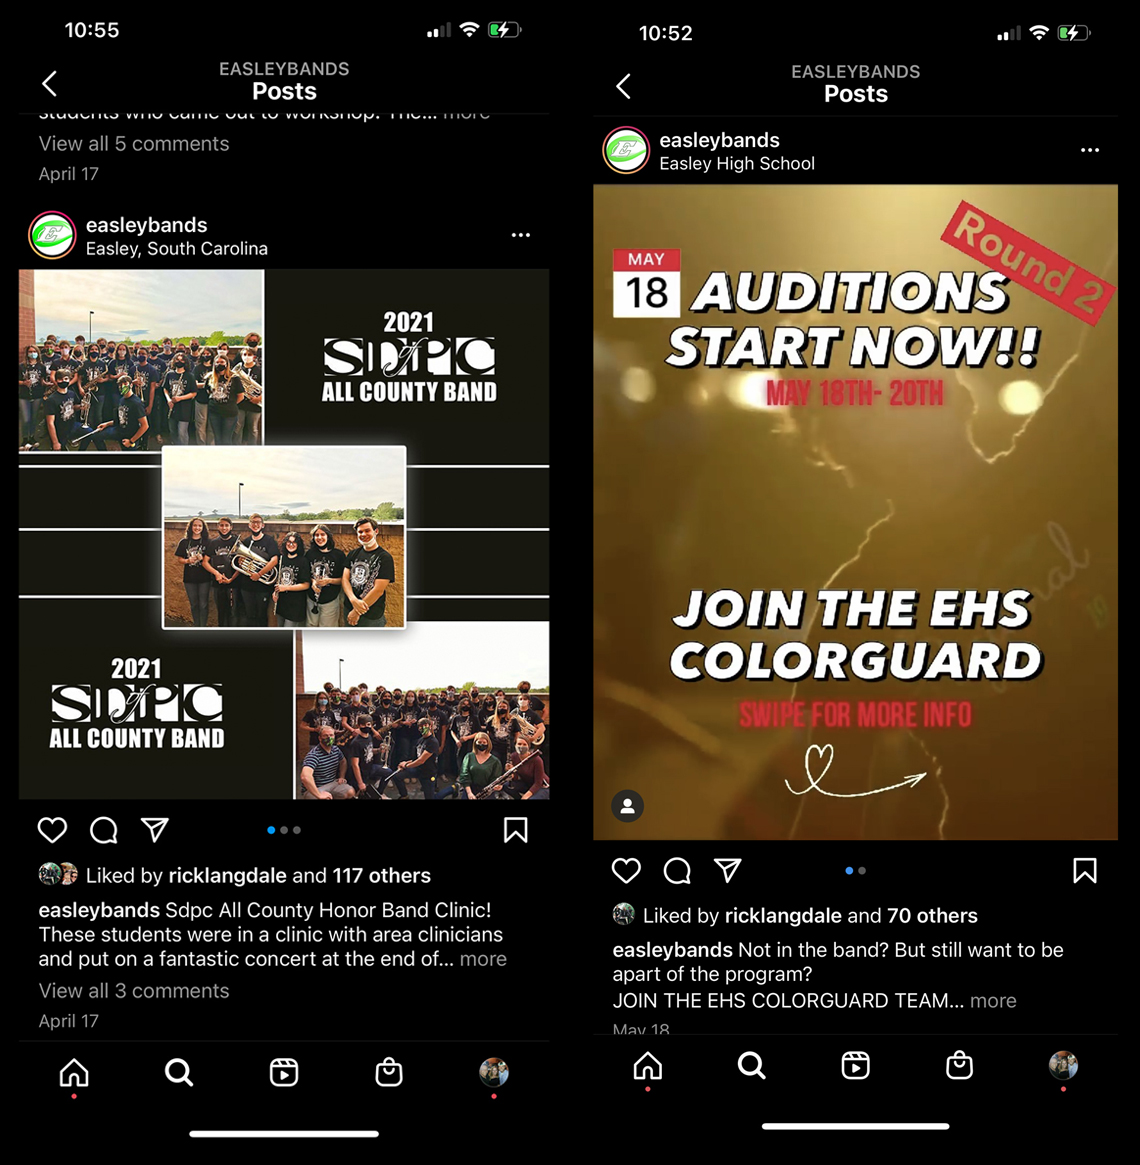 Easley Bands Instagram post promoting students in the All County Band (left), Instagram post promoting color guard auditions (right)